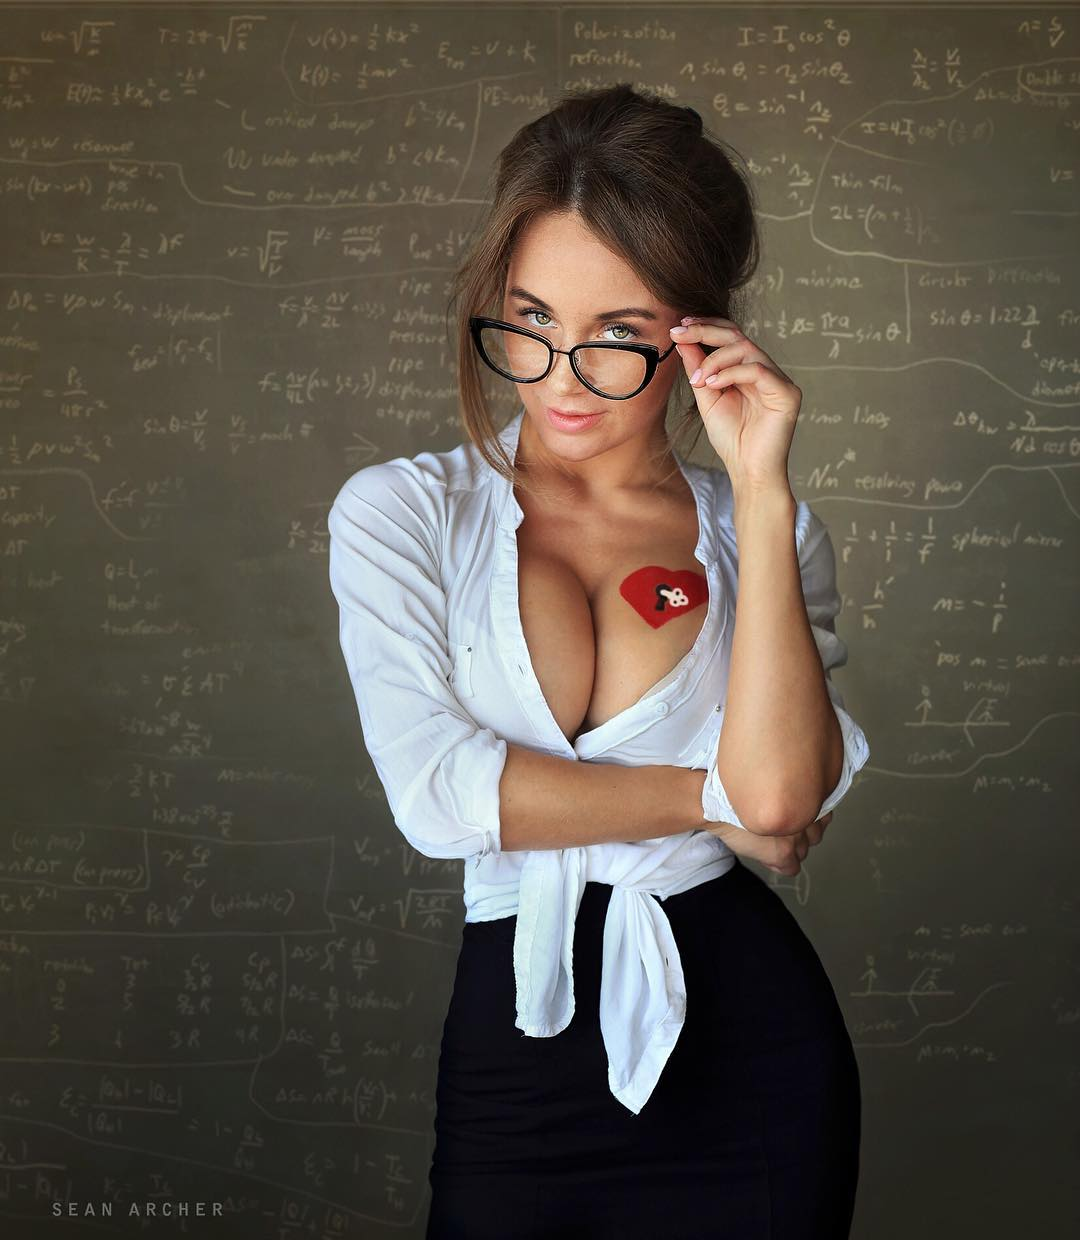 talk dirty online free sexy chat #glasses #busty  #Olga #teacher #classroom #cf #nonnude #eyecontact